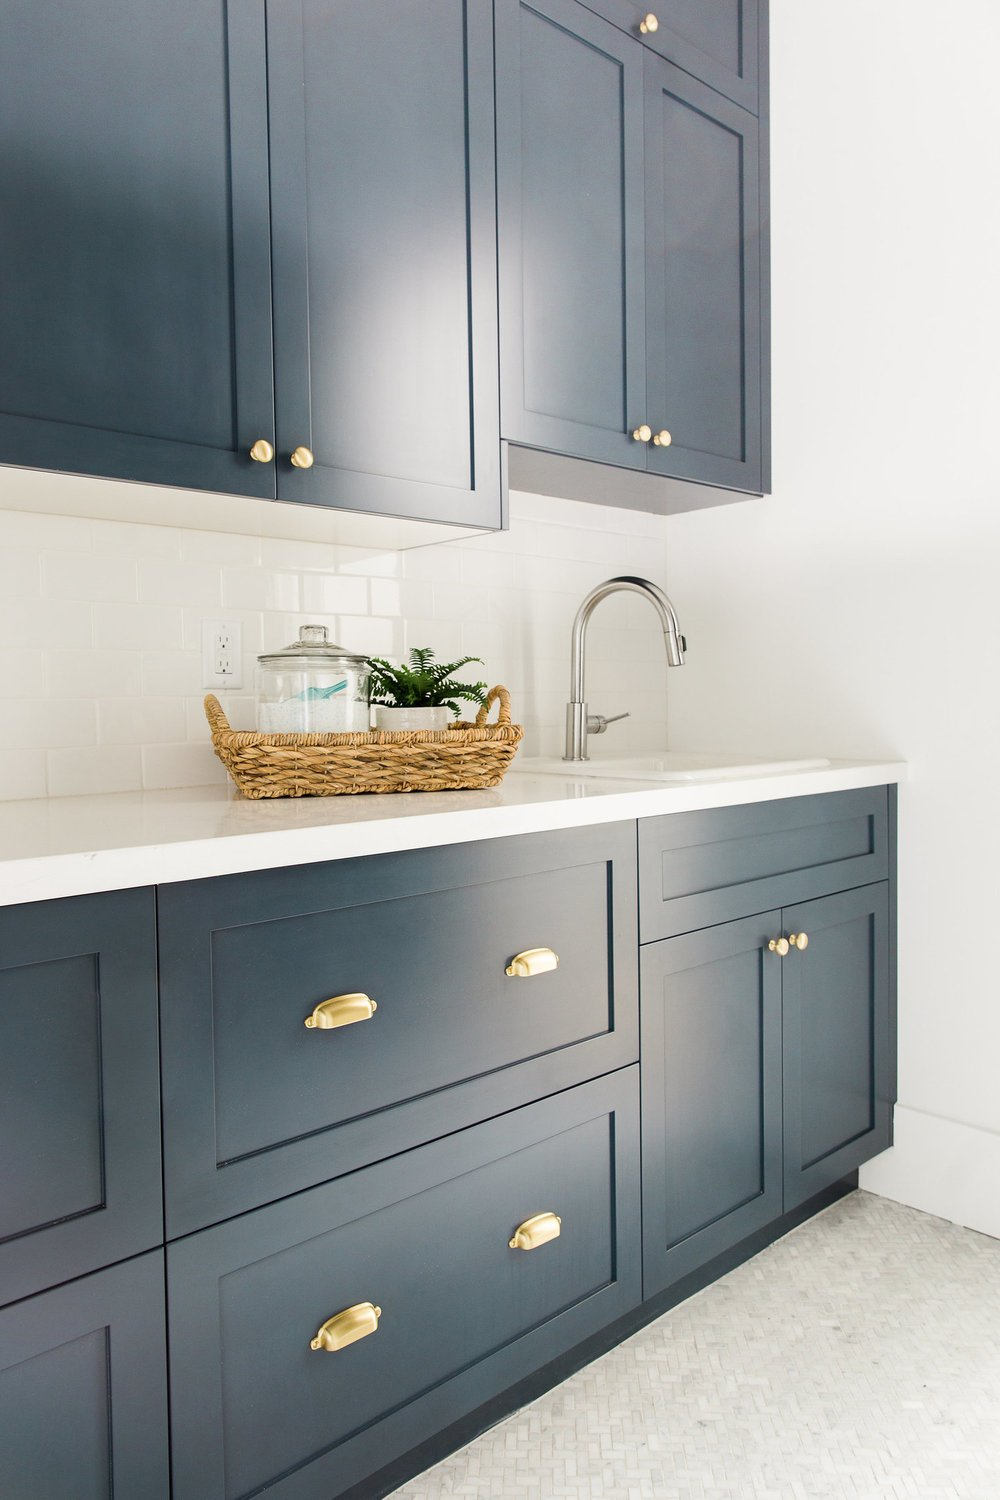 dark kitchen cabinets with gold cupboard handles